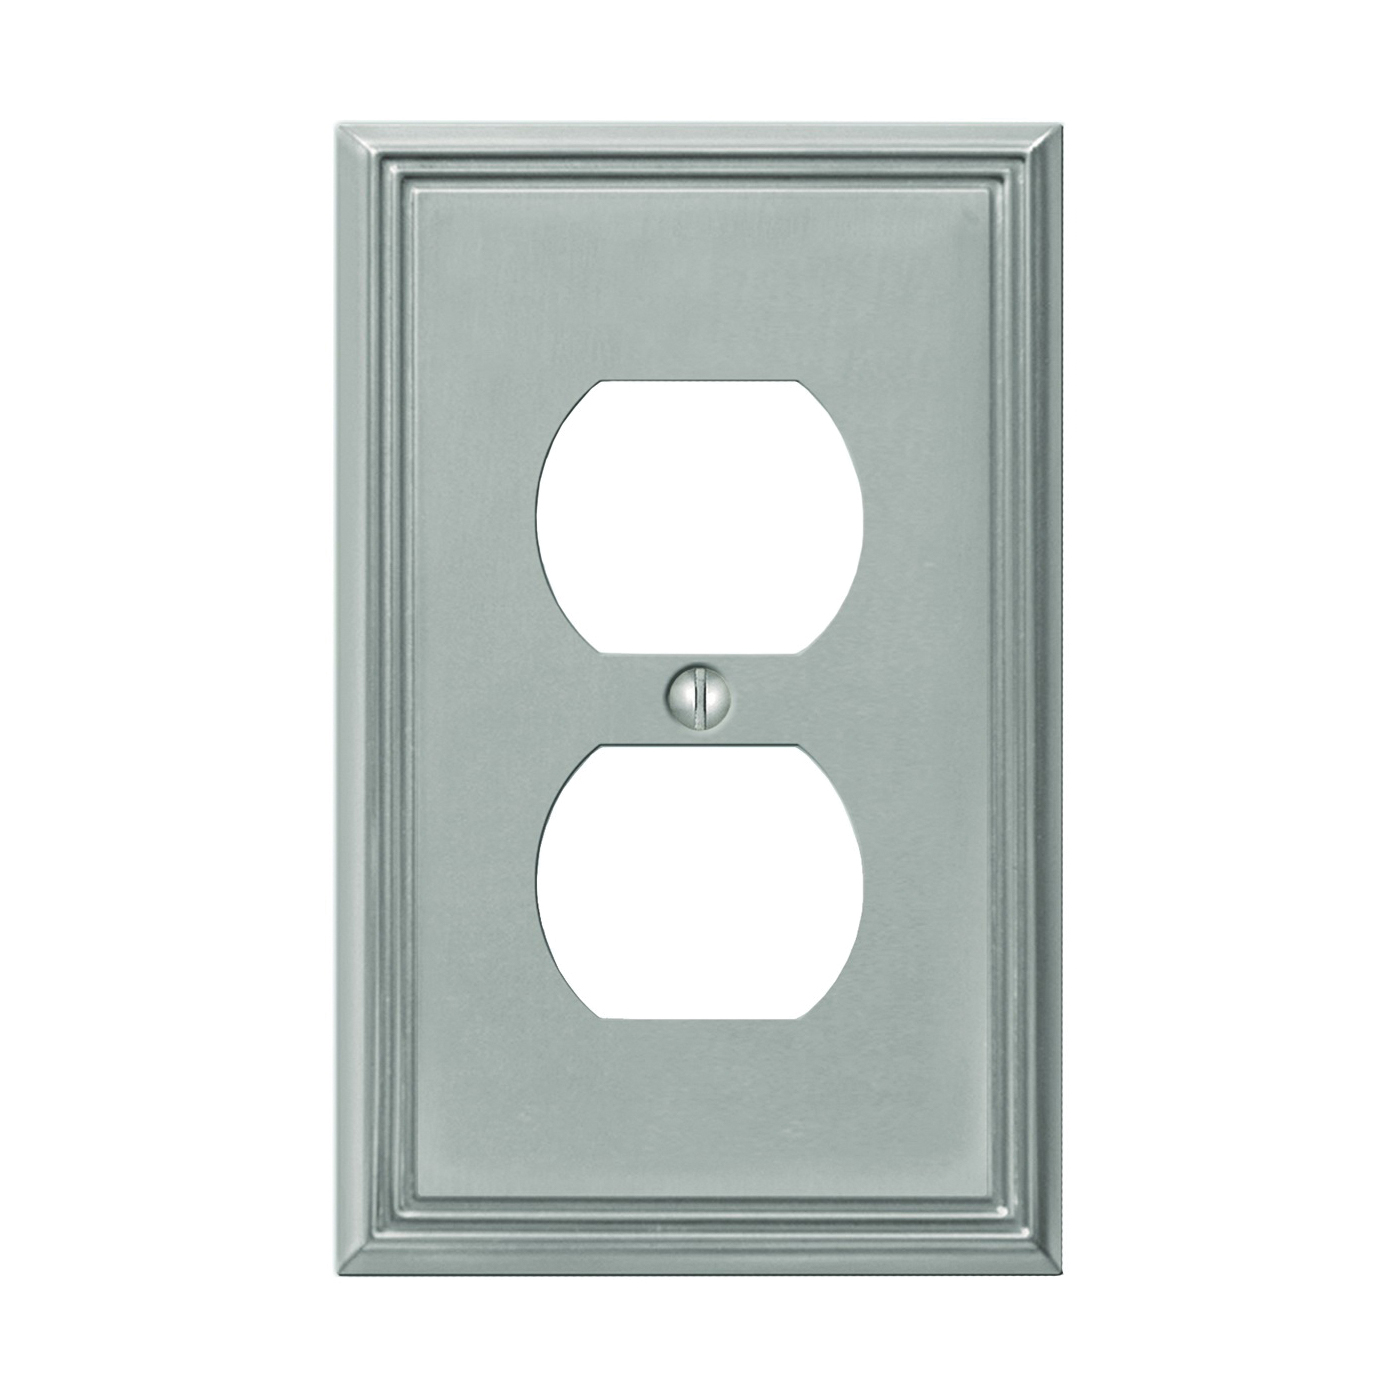 Picture of AmerTac Metro Line 77DBN Outlet Wallplate, 4-7/8 in L, 3 in W, 1-Gang, Metal, Brushed Nickel, Wall Mounting